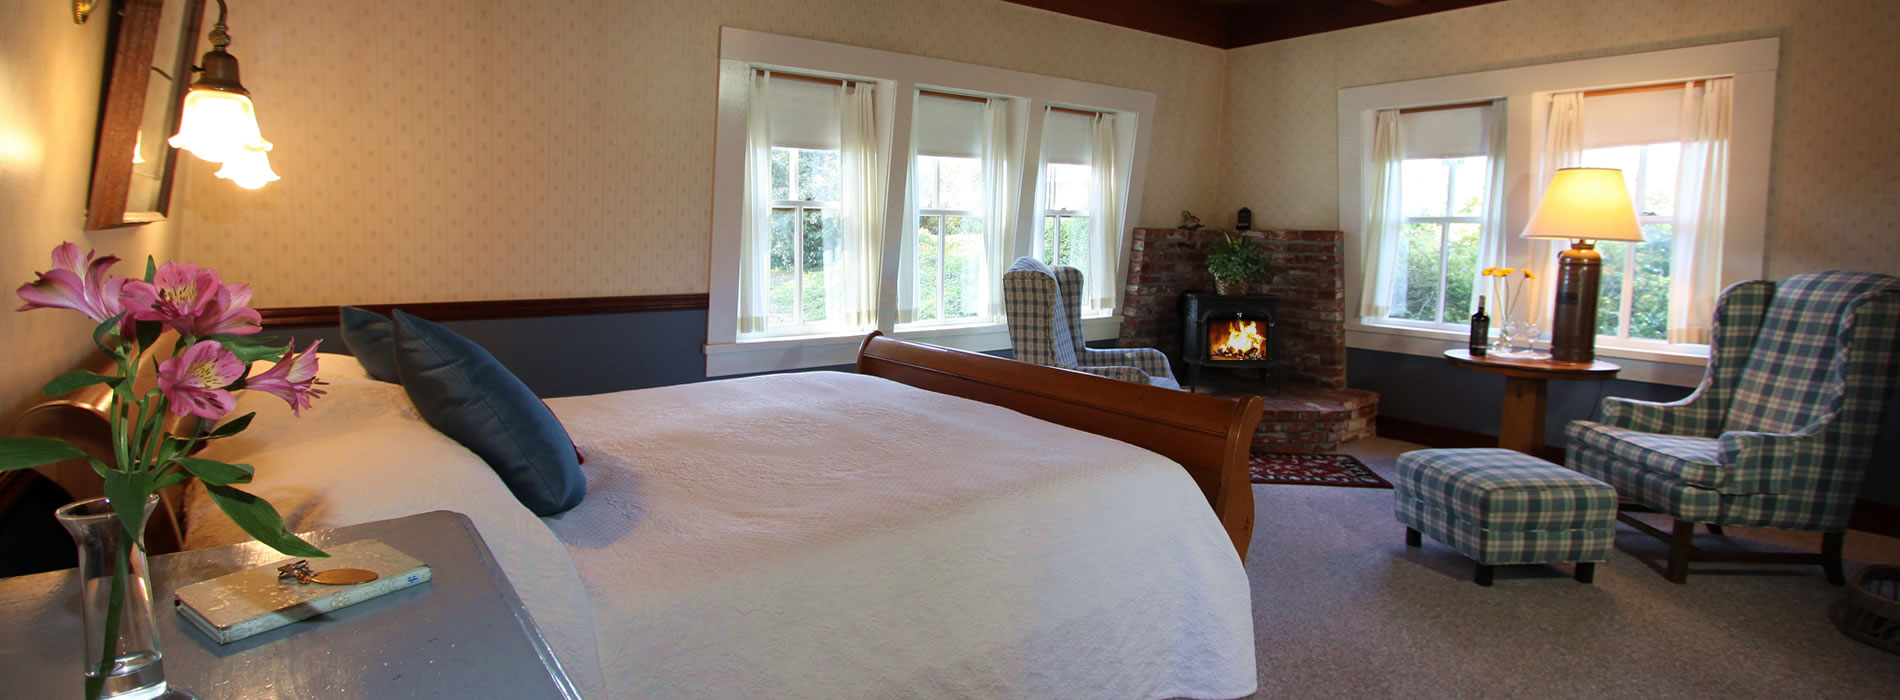 mendocino bed and breakfast inn specials and packages